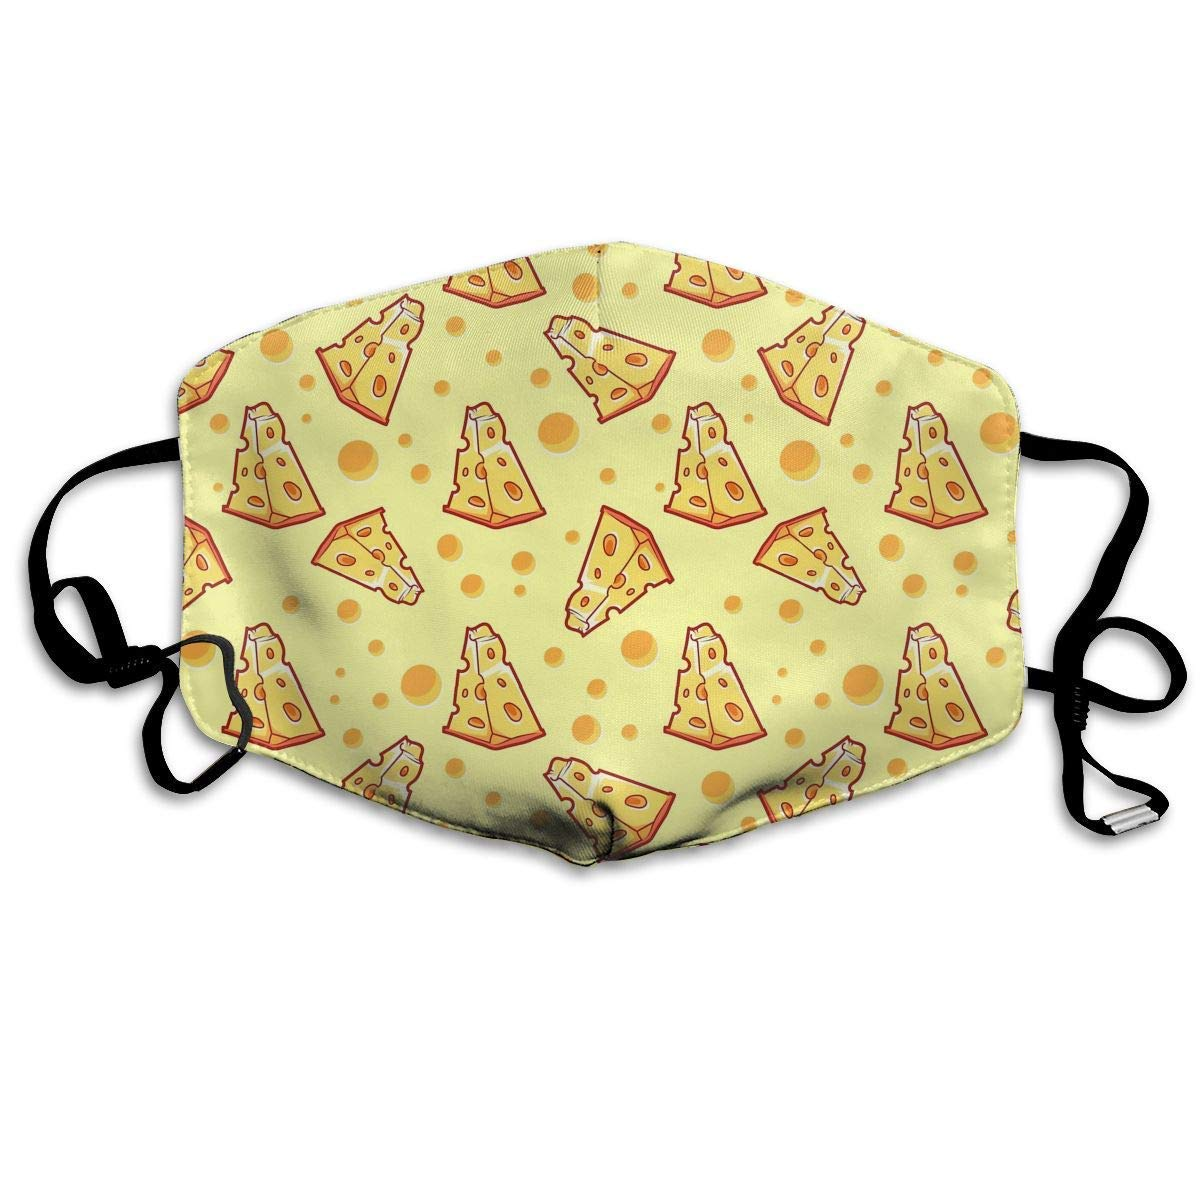 Vbnbvn Boca Máscara,Mascarillas,Máscaras bucales,Dustproof Anti- Washable Reusable Pizza Cheese Mouth Cover Mask Respirator Germ Protective Breath Healthy Safety Warm Windproof Mask